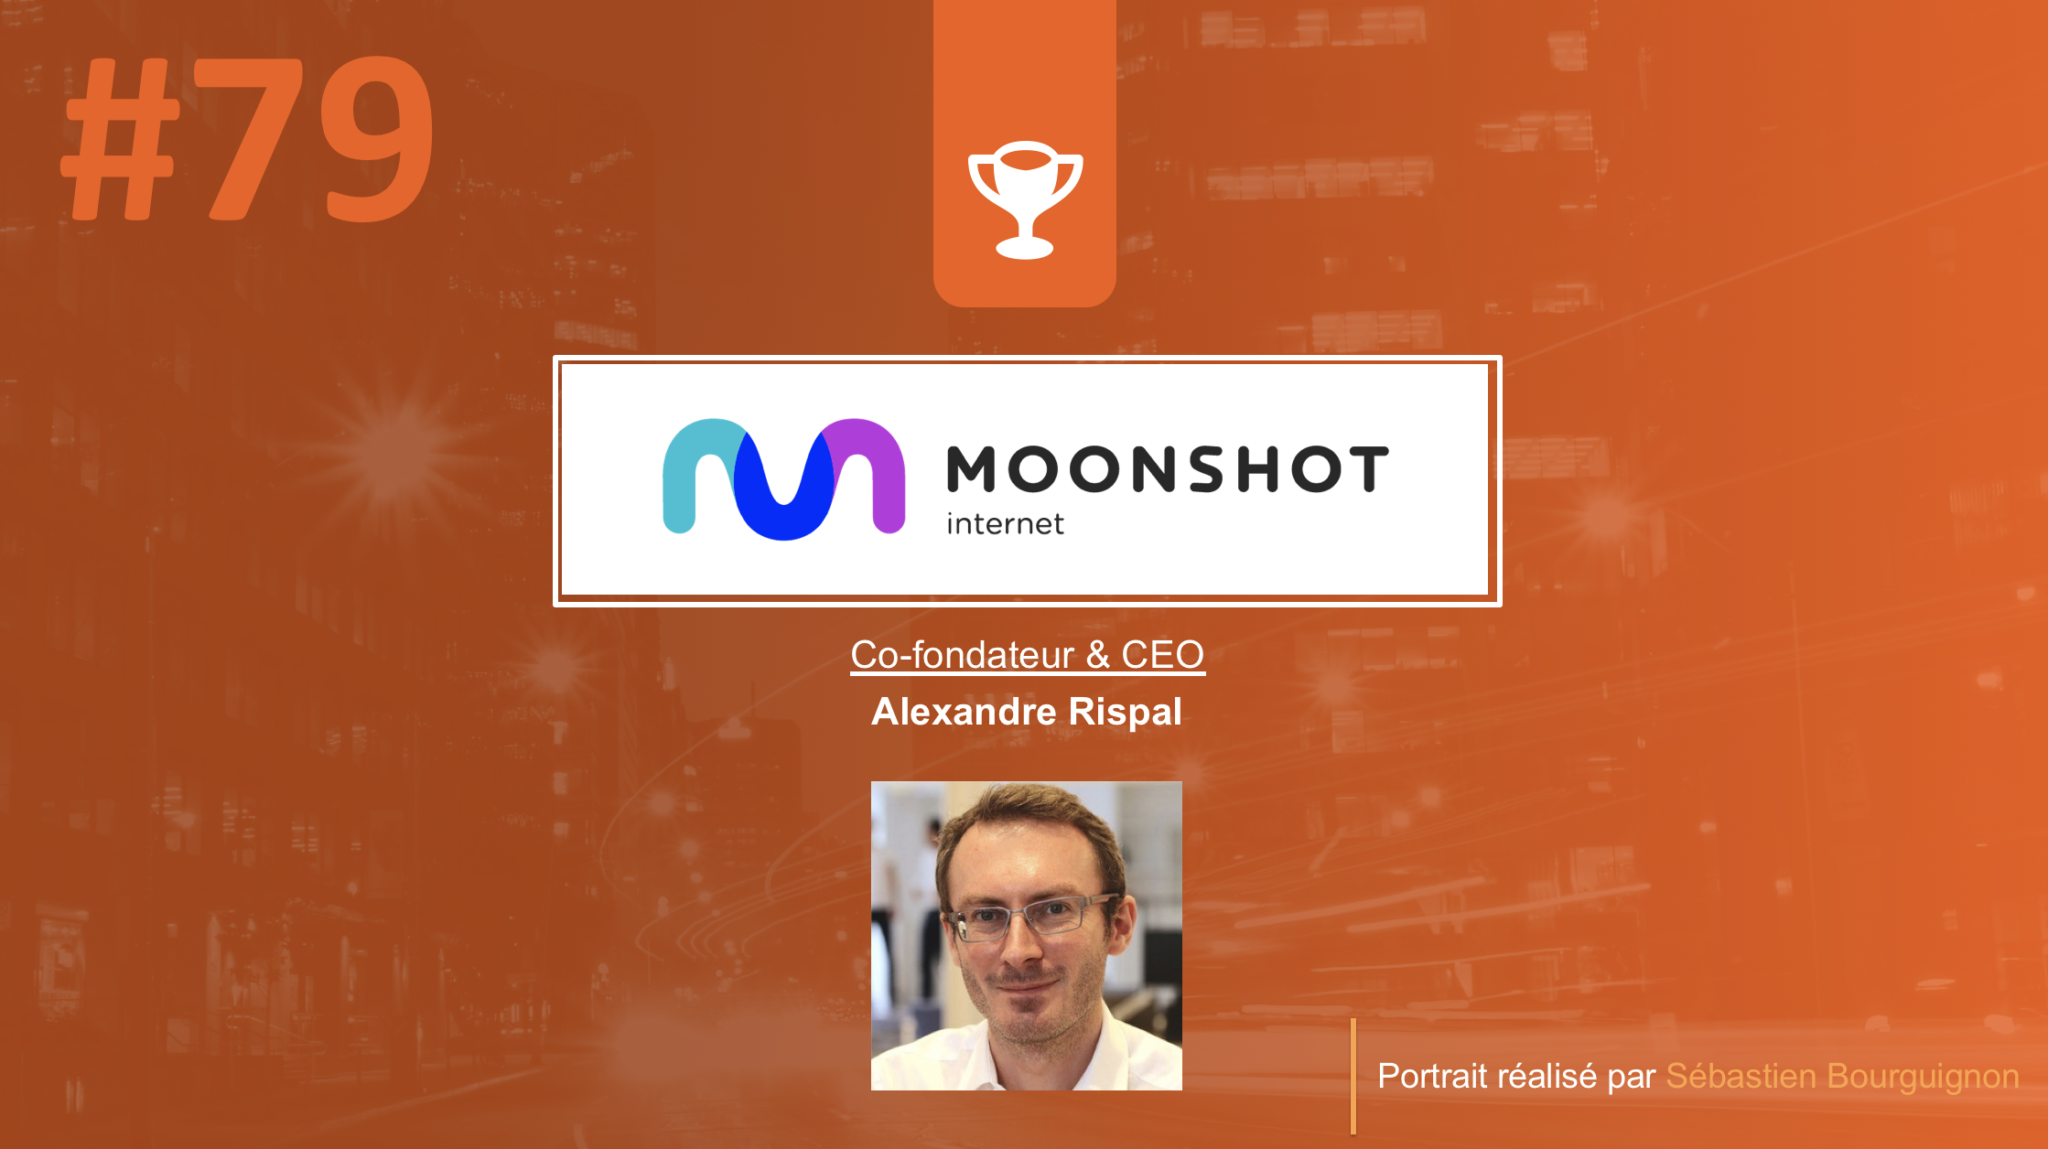 moonshot-internet